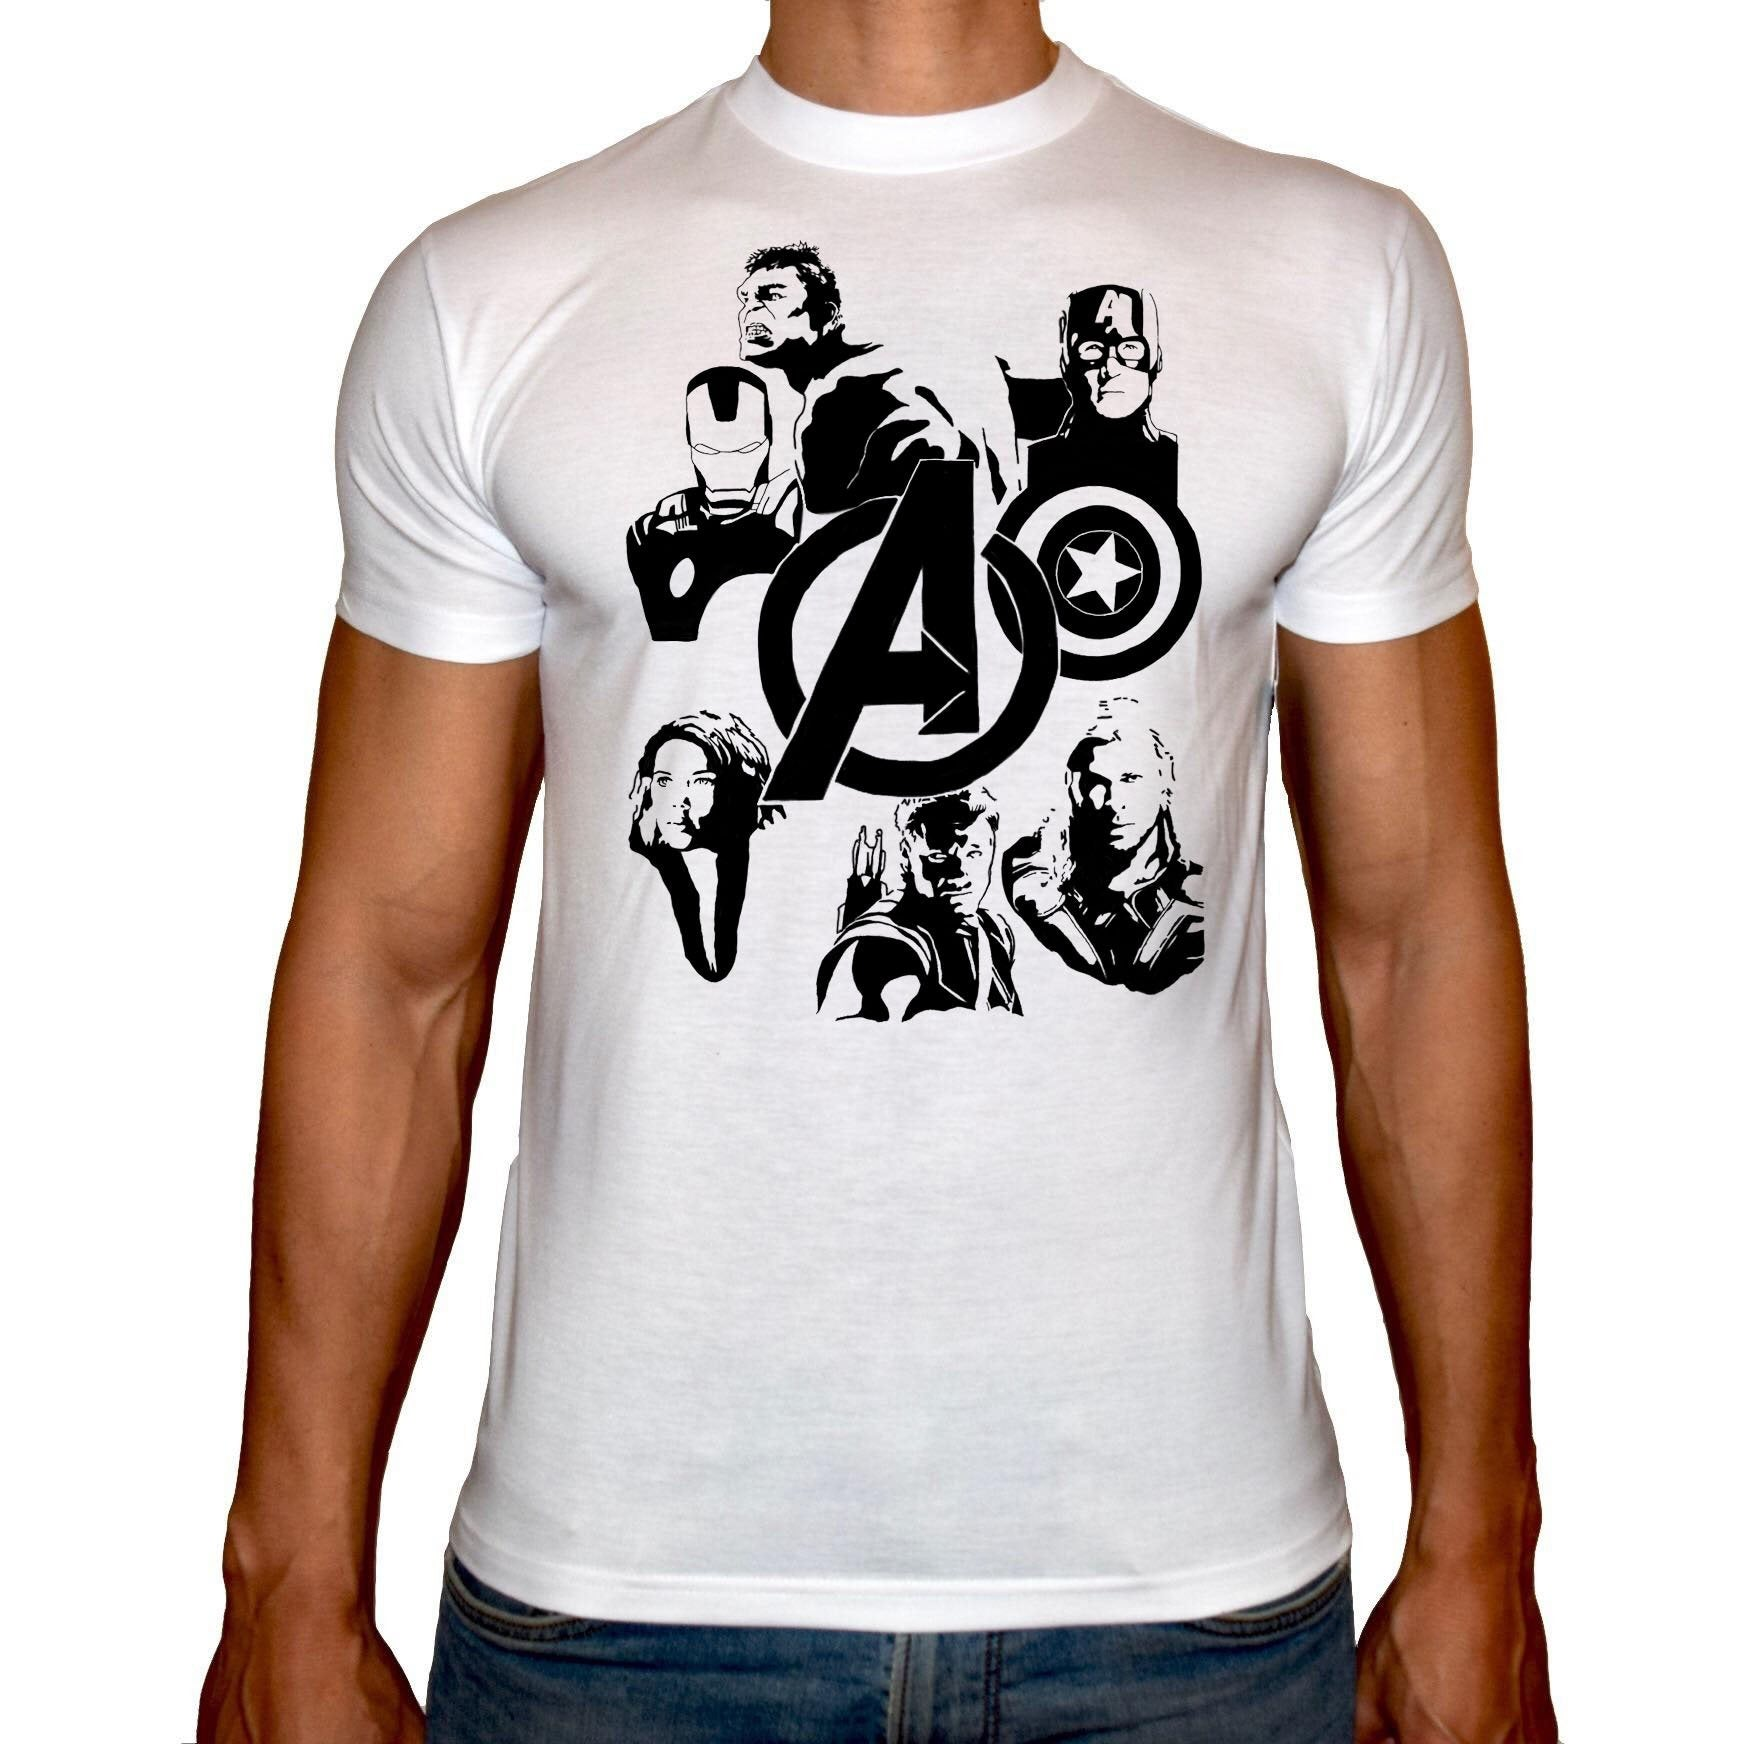 Phoenix WHITE Round Neck Printed T-Shirt Men (Avengers)